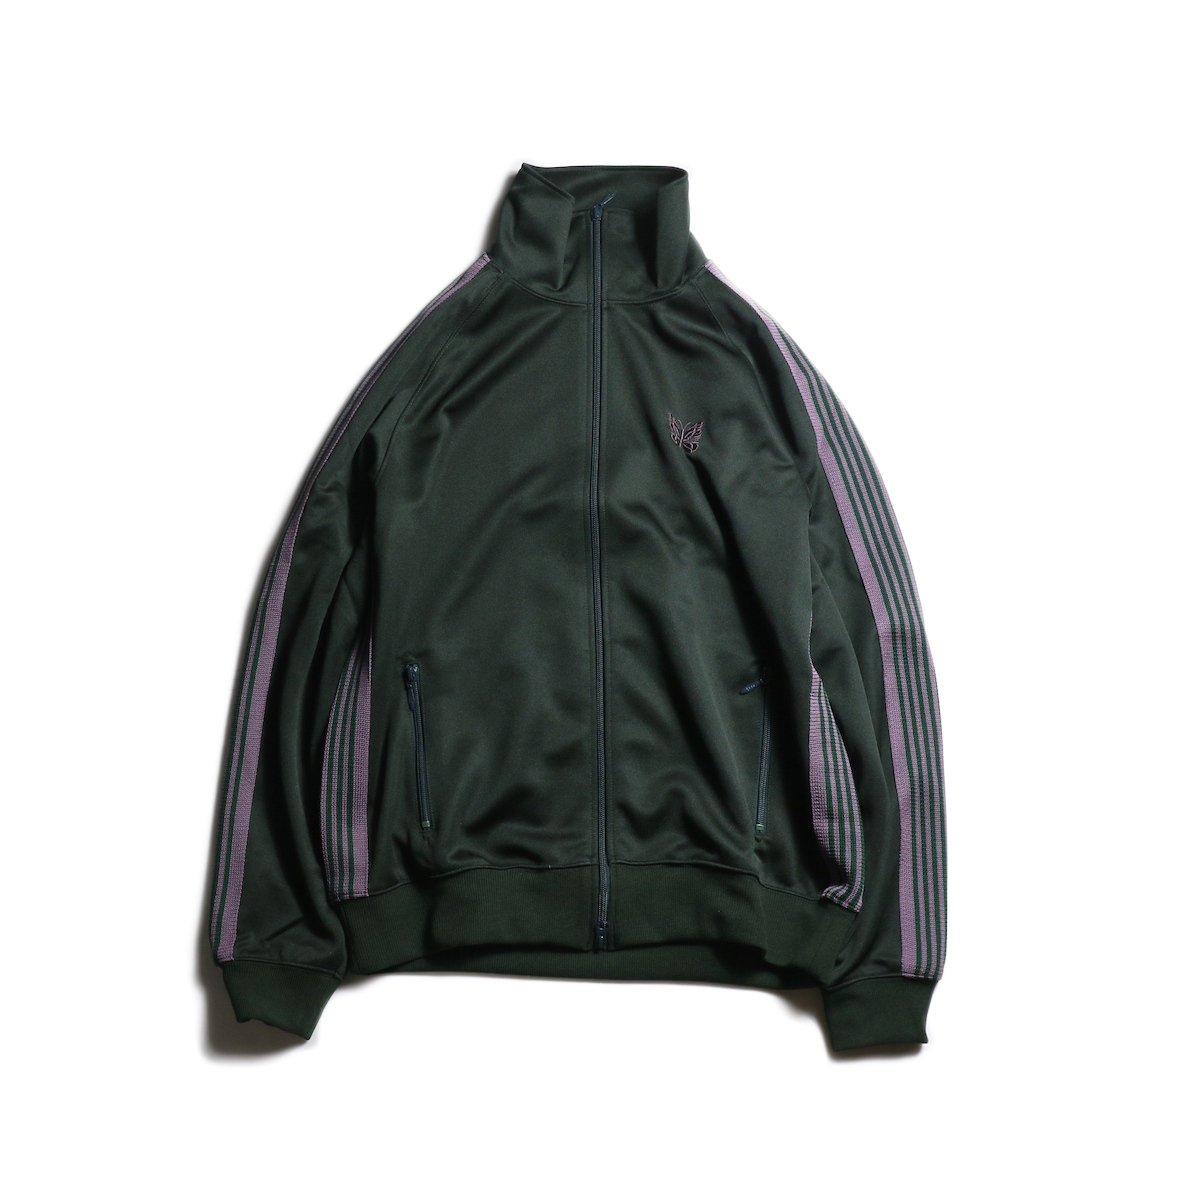 Needles / TRACK JACKET - POLY SMOOTH (Green)